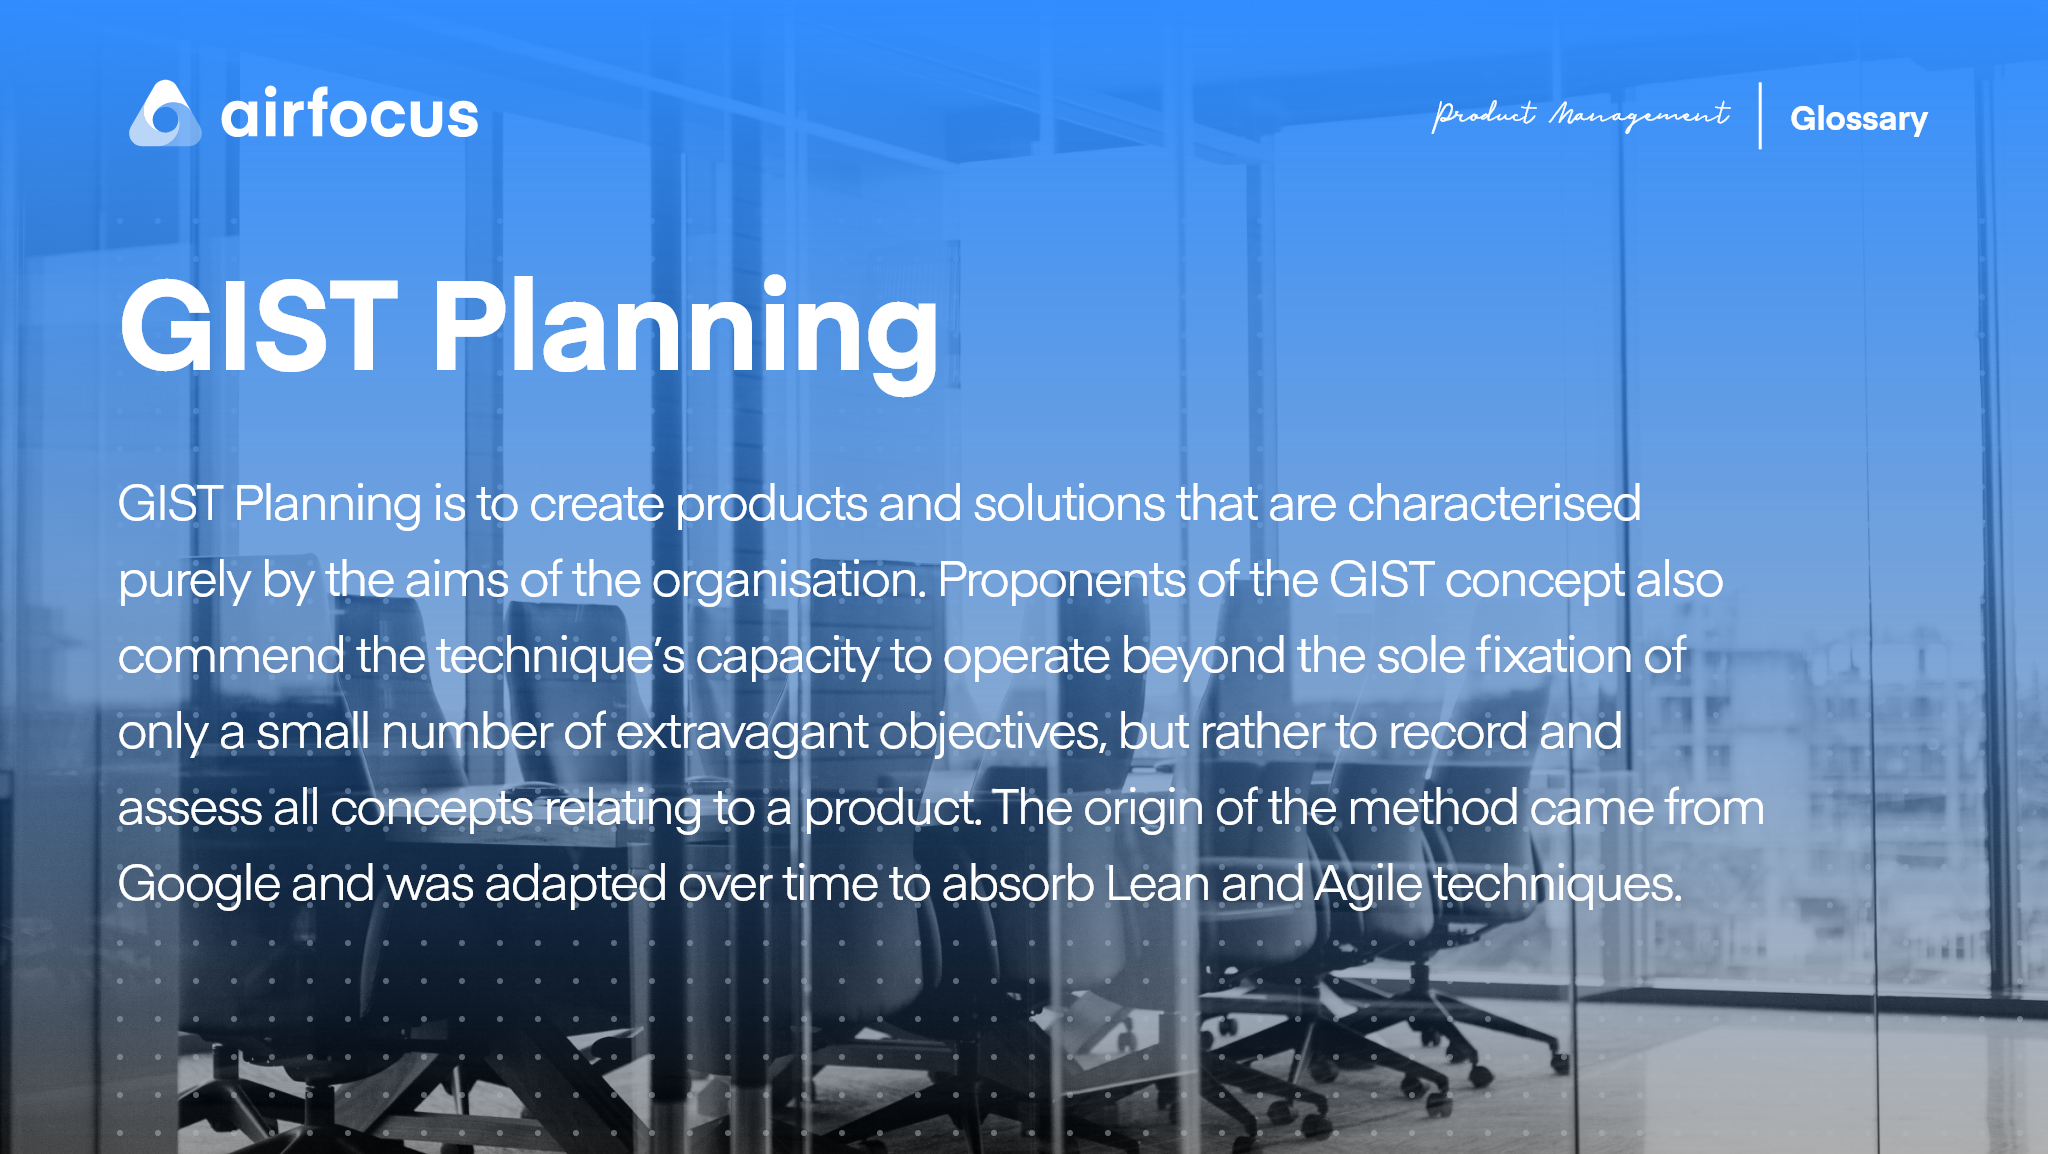 What is GIST Planning?